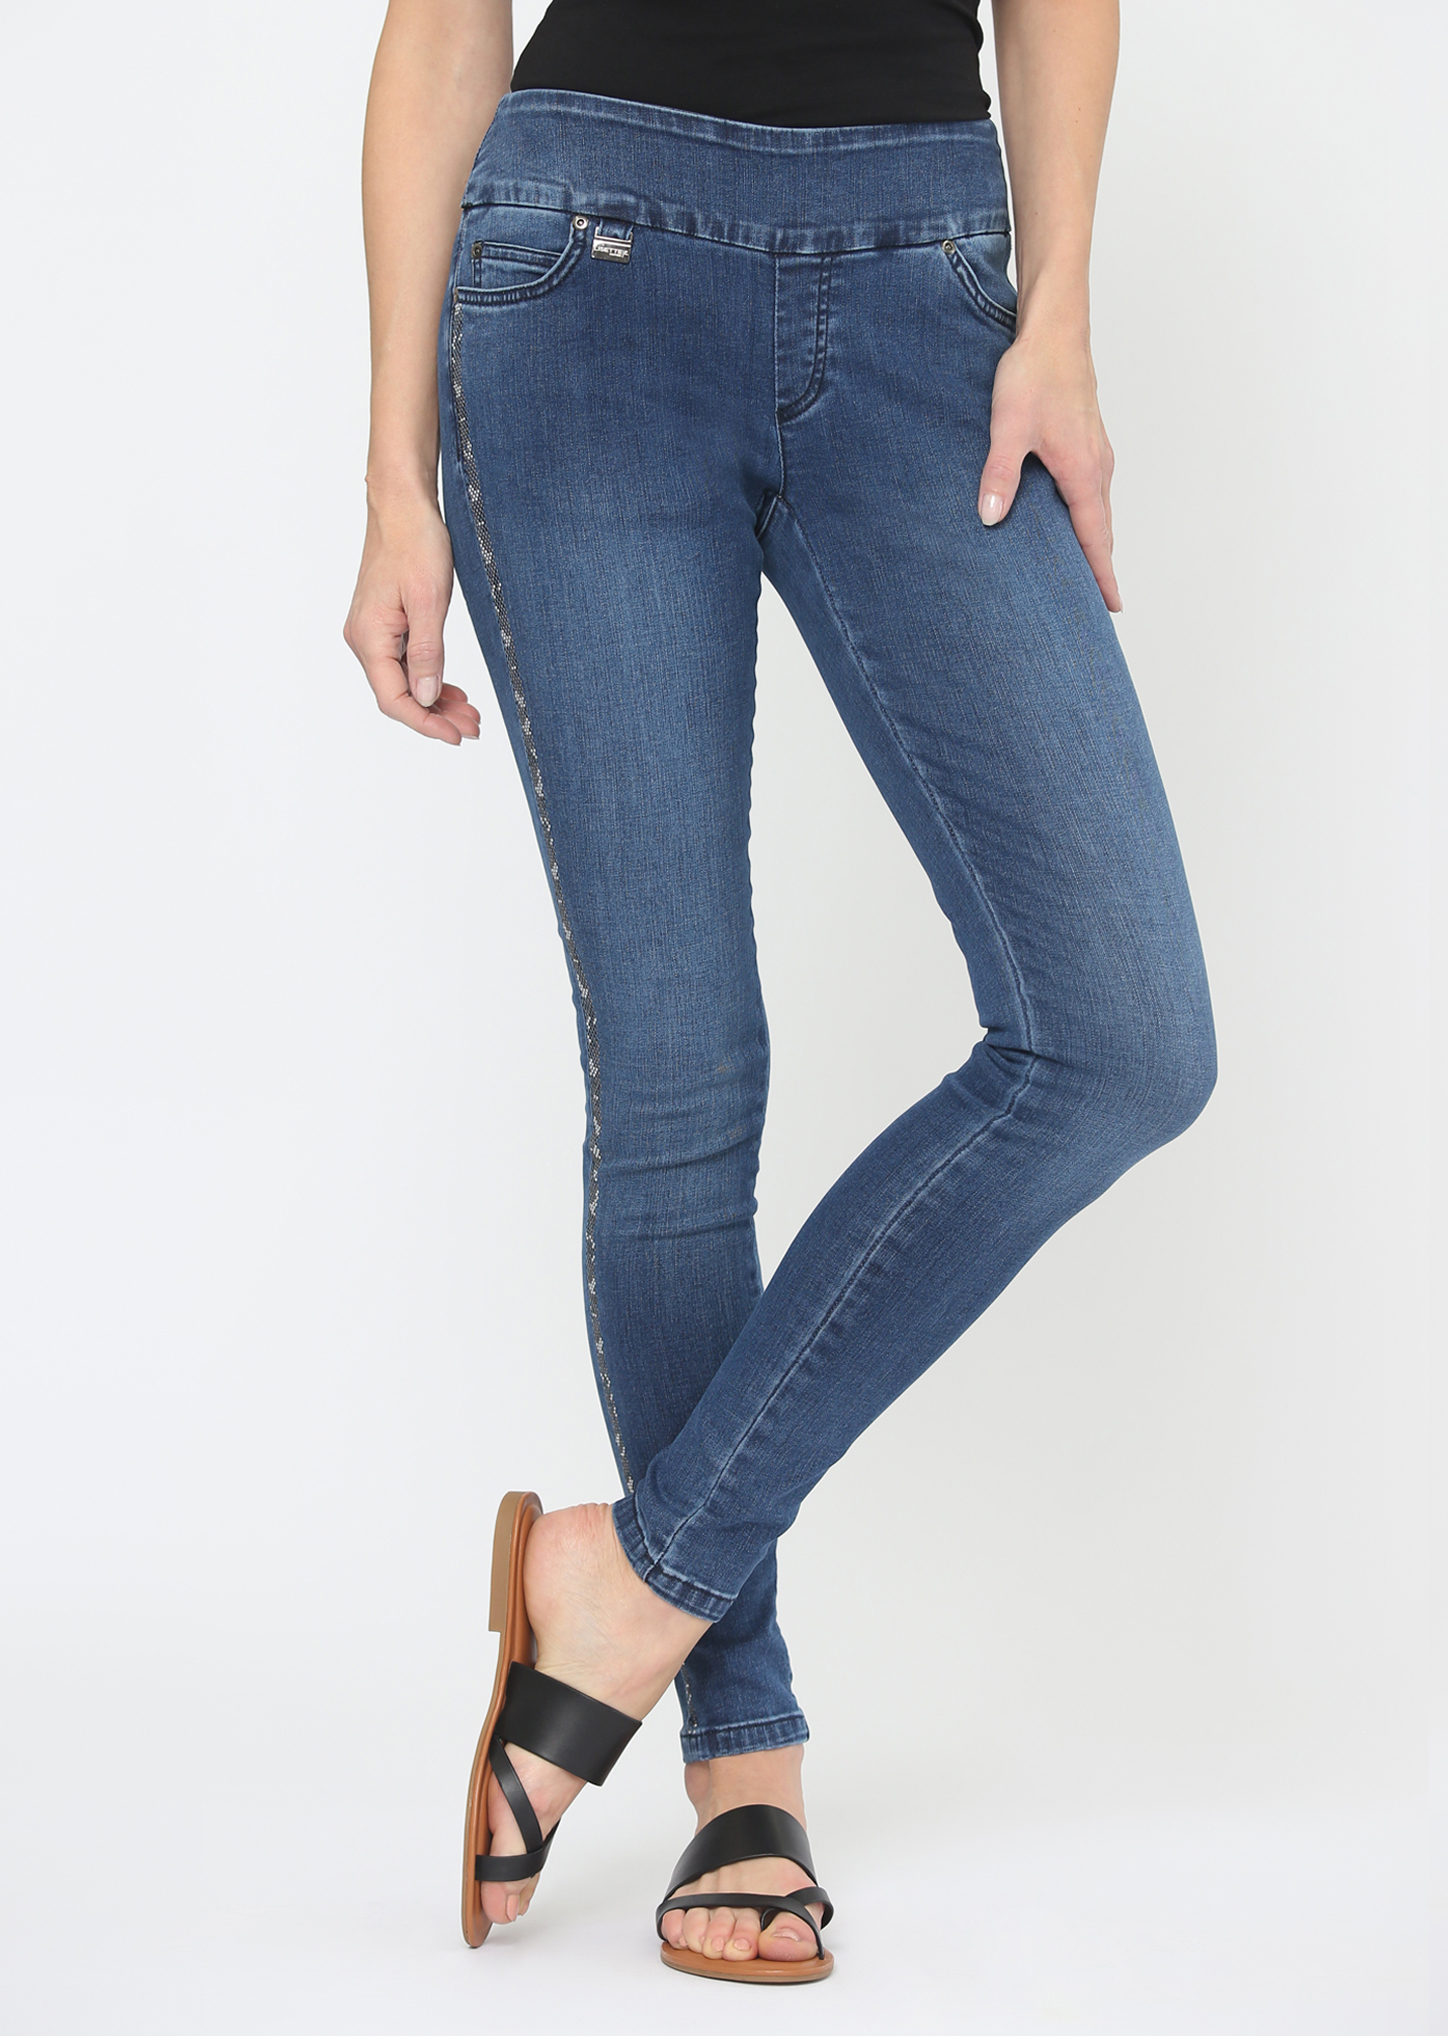 Lisette L. Slim Jean Style 603954 Lacey Denim, Color Denim Blue